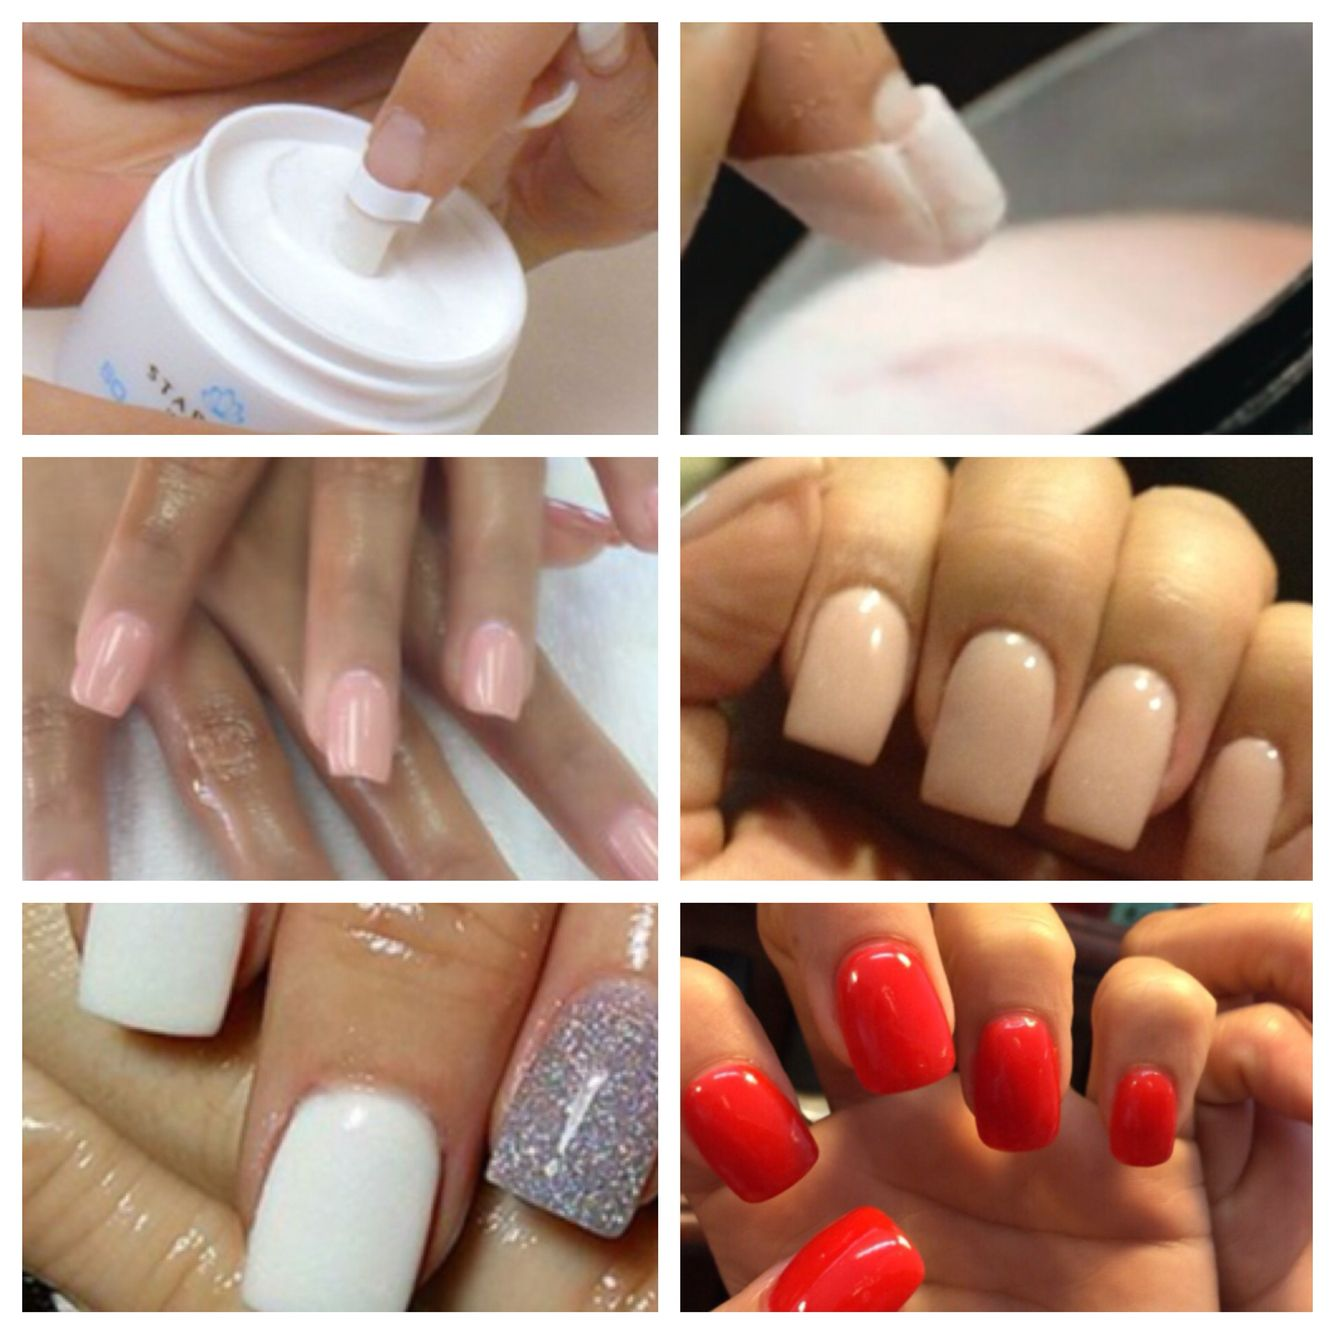 Nail Dipping With This System You Can Achieve Beautiful Acrylic Overlays On Natural Nails Or Tips And You Can A Nails Acrylic French Manicure Acrylic Overlay